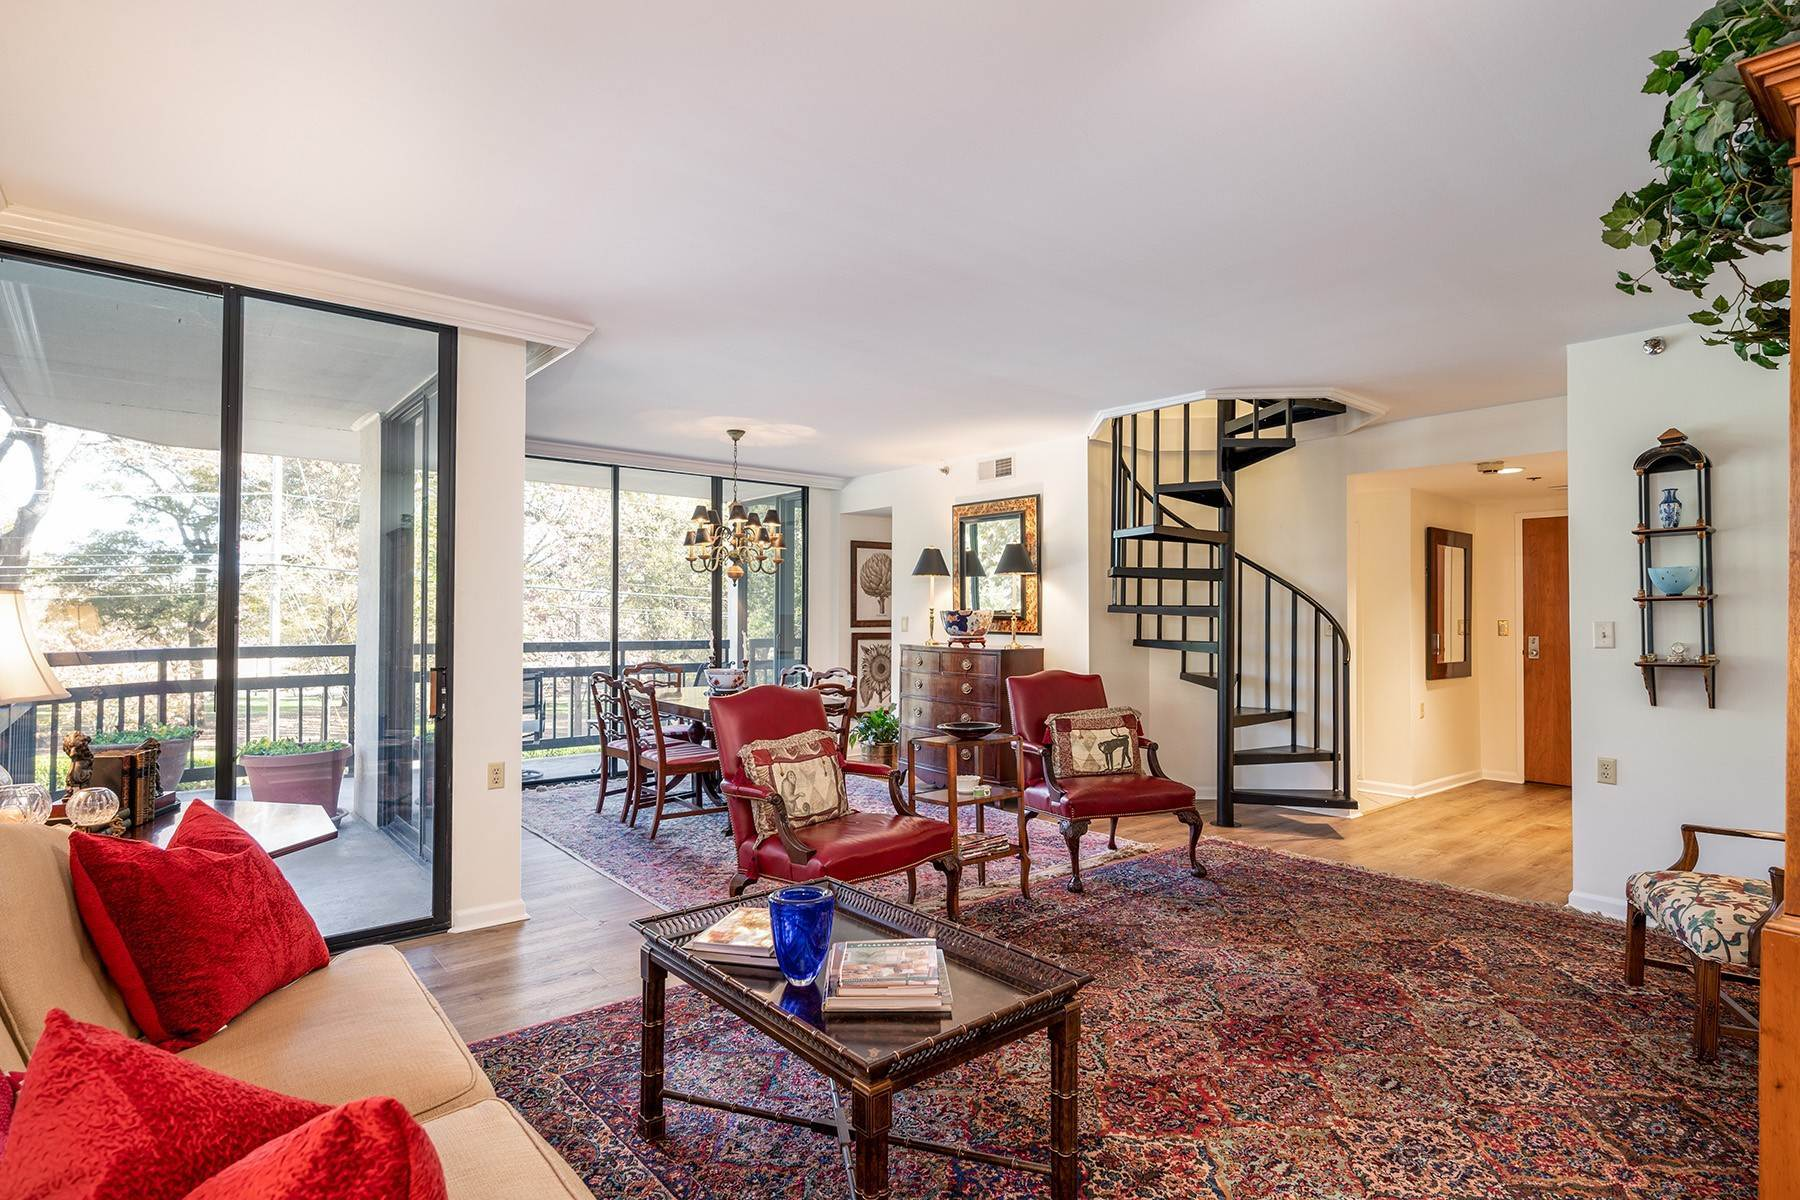 Condominiums for Sale at Rare Opportunity to Live as Close to the Heart of Midtown Atlanta 1130 Piedmont Avenue, 414 Atlanta, Georgia 30309 United States